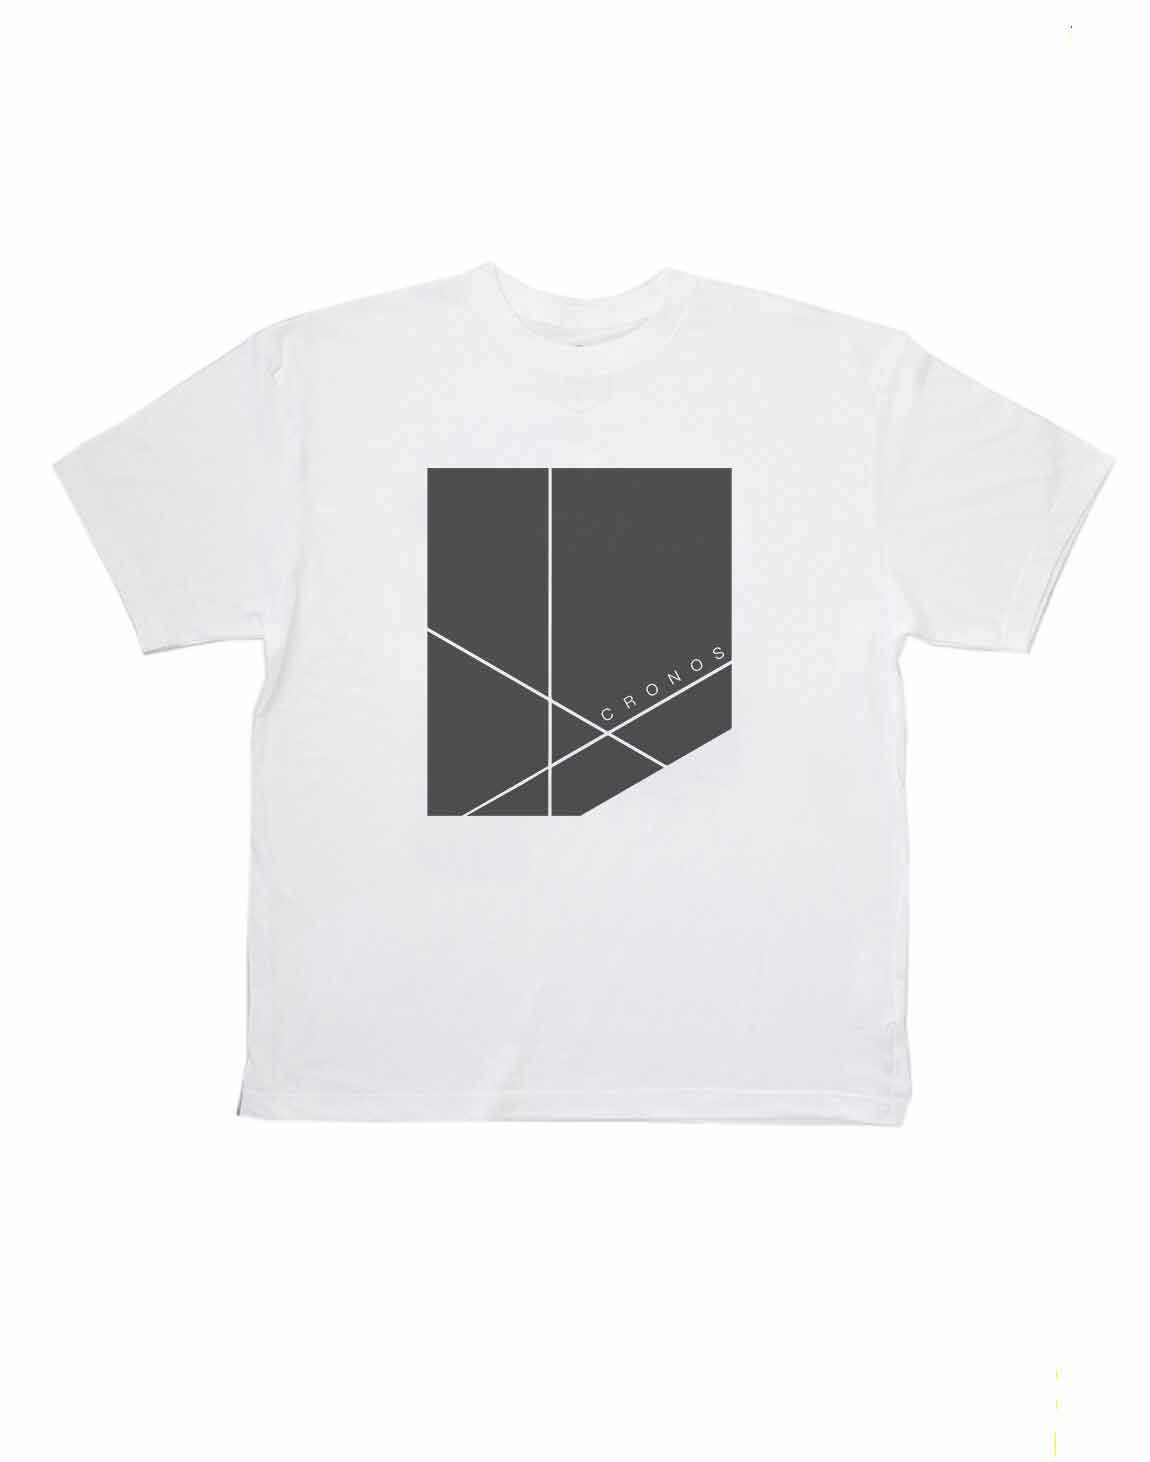 <img class='new_mark_img1' src='https://img.shop-pro.jp/img/new/icons1.gif' style='border:none;display:inline;margin:0px;padding:0px;width:auto;' />CRONOS NEW BOX LOGO OVER SIZE T-SHIRTS【WHITE】